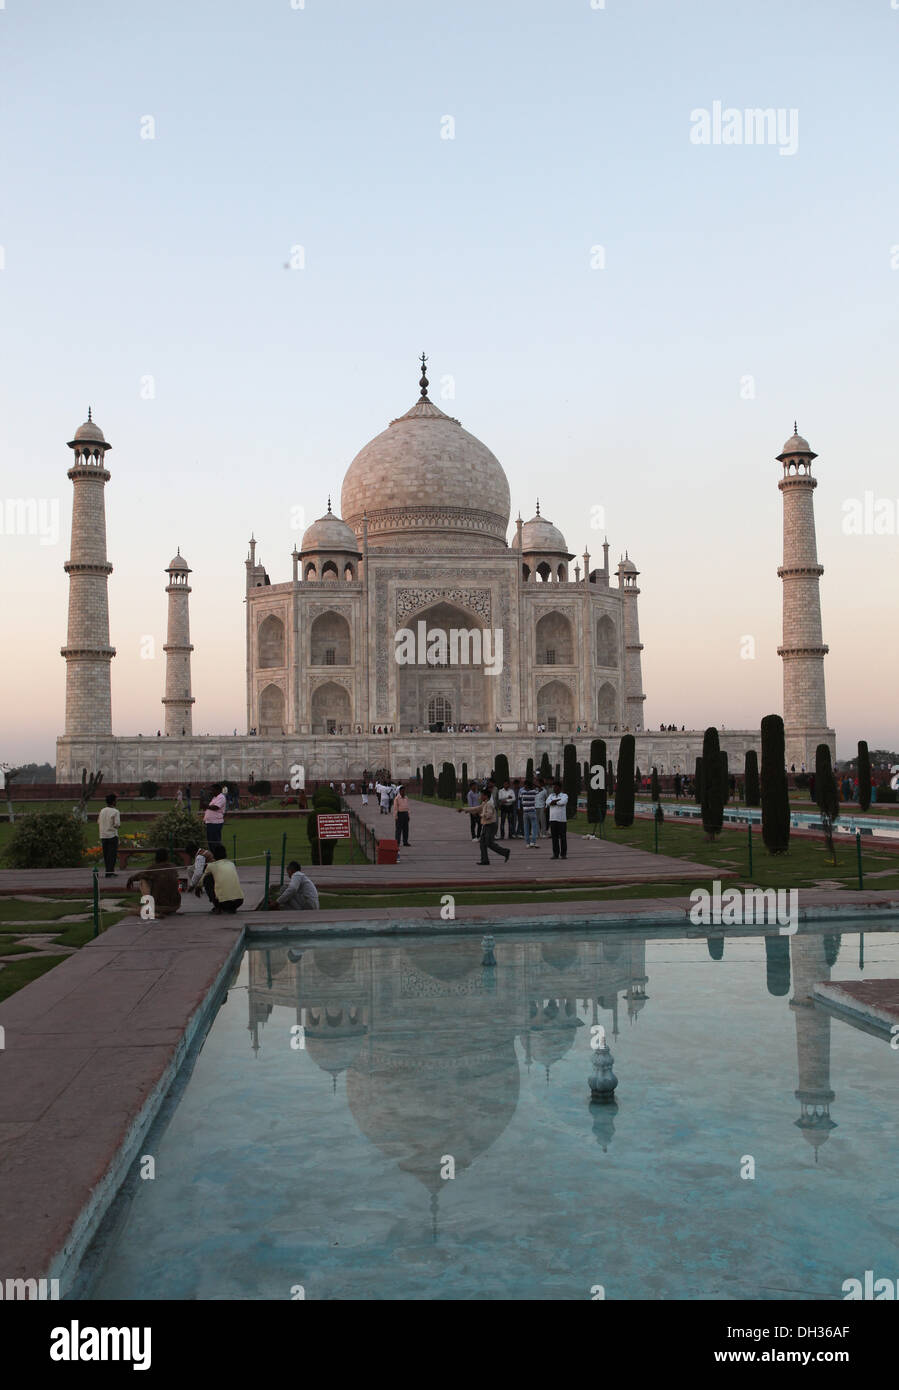 Tourists in front of the Taj Mahal, Agra, Uttar Pradesh, India, Asia Stock Photo